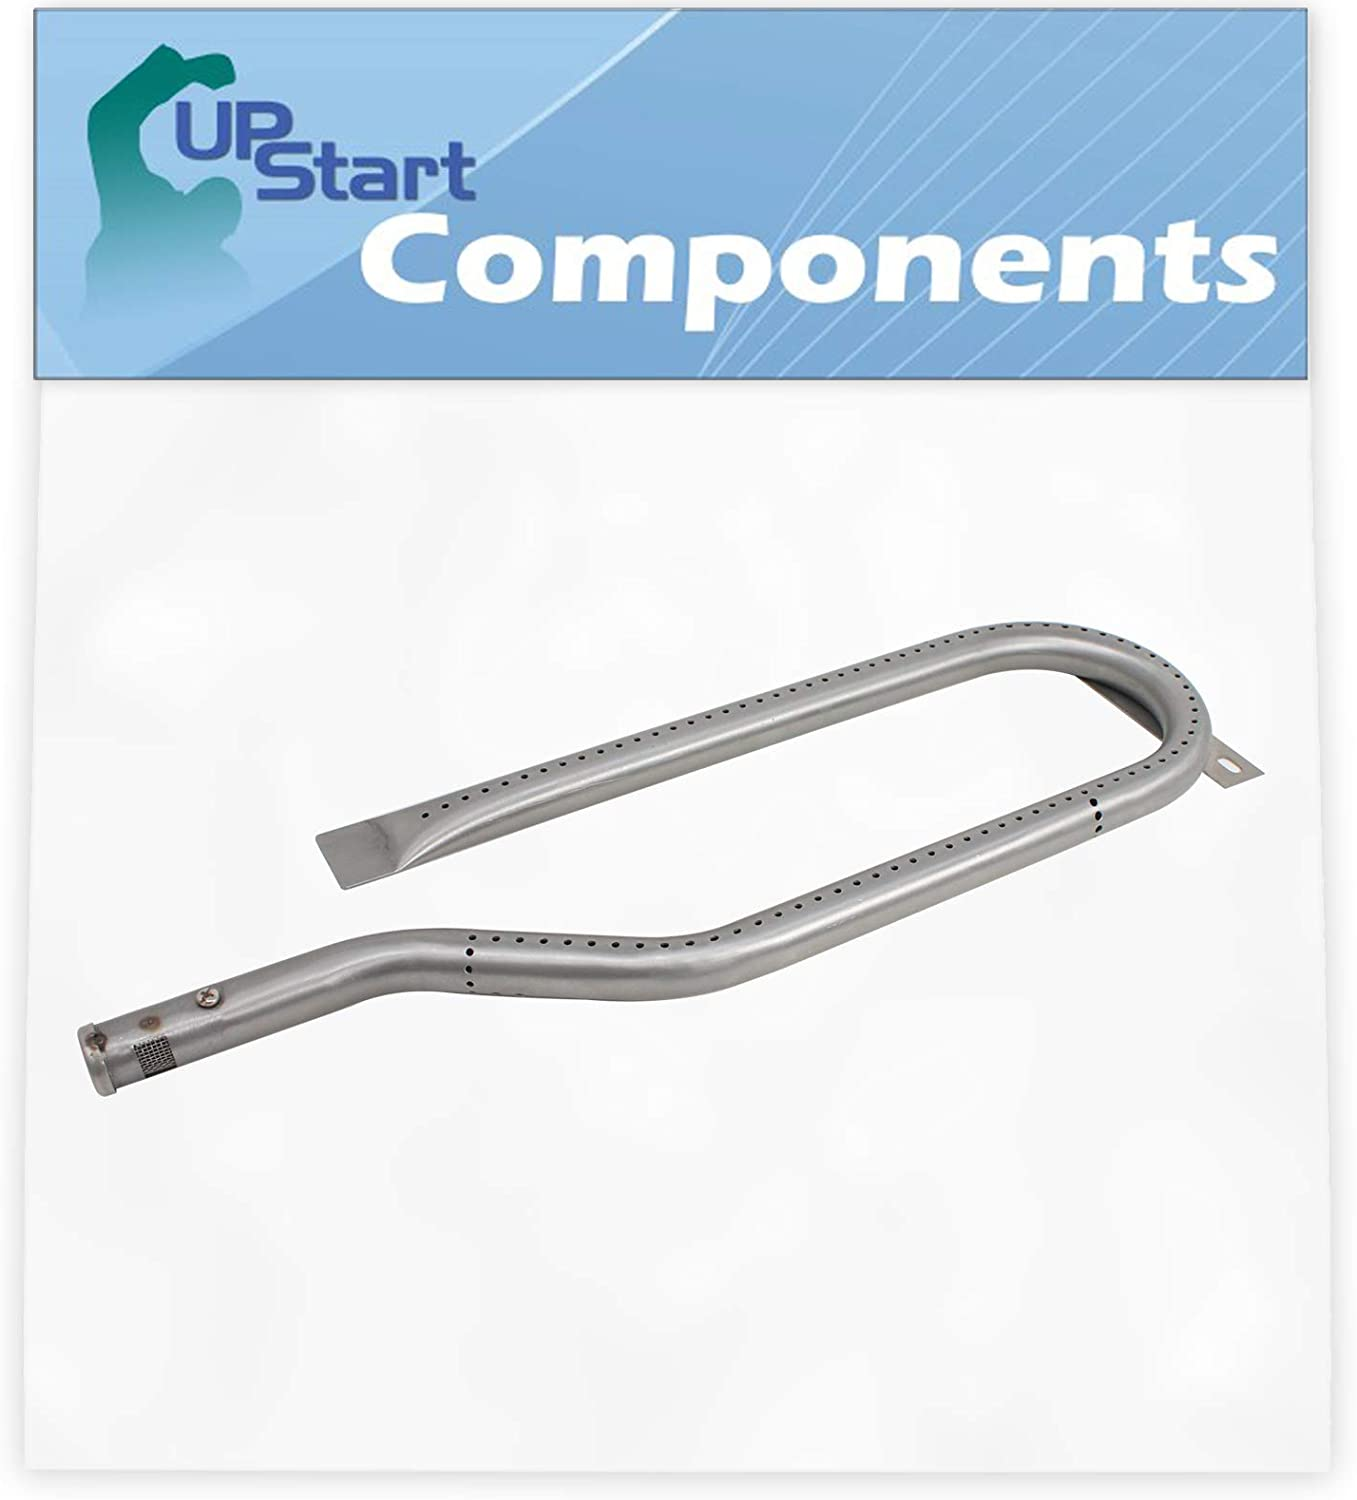 UpStart Components BBQ Gas Grill Today's only Burner f Tube Popular standard Parts Replacement